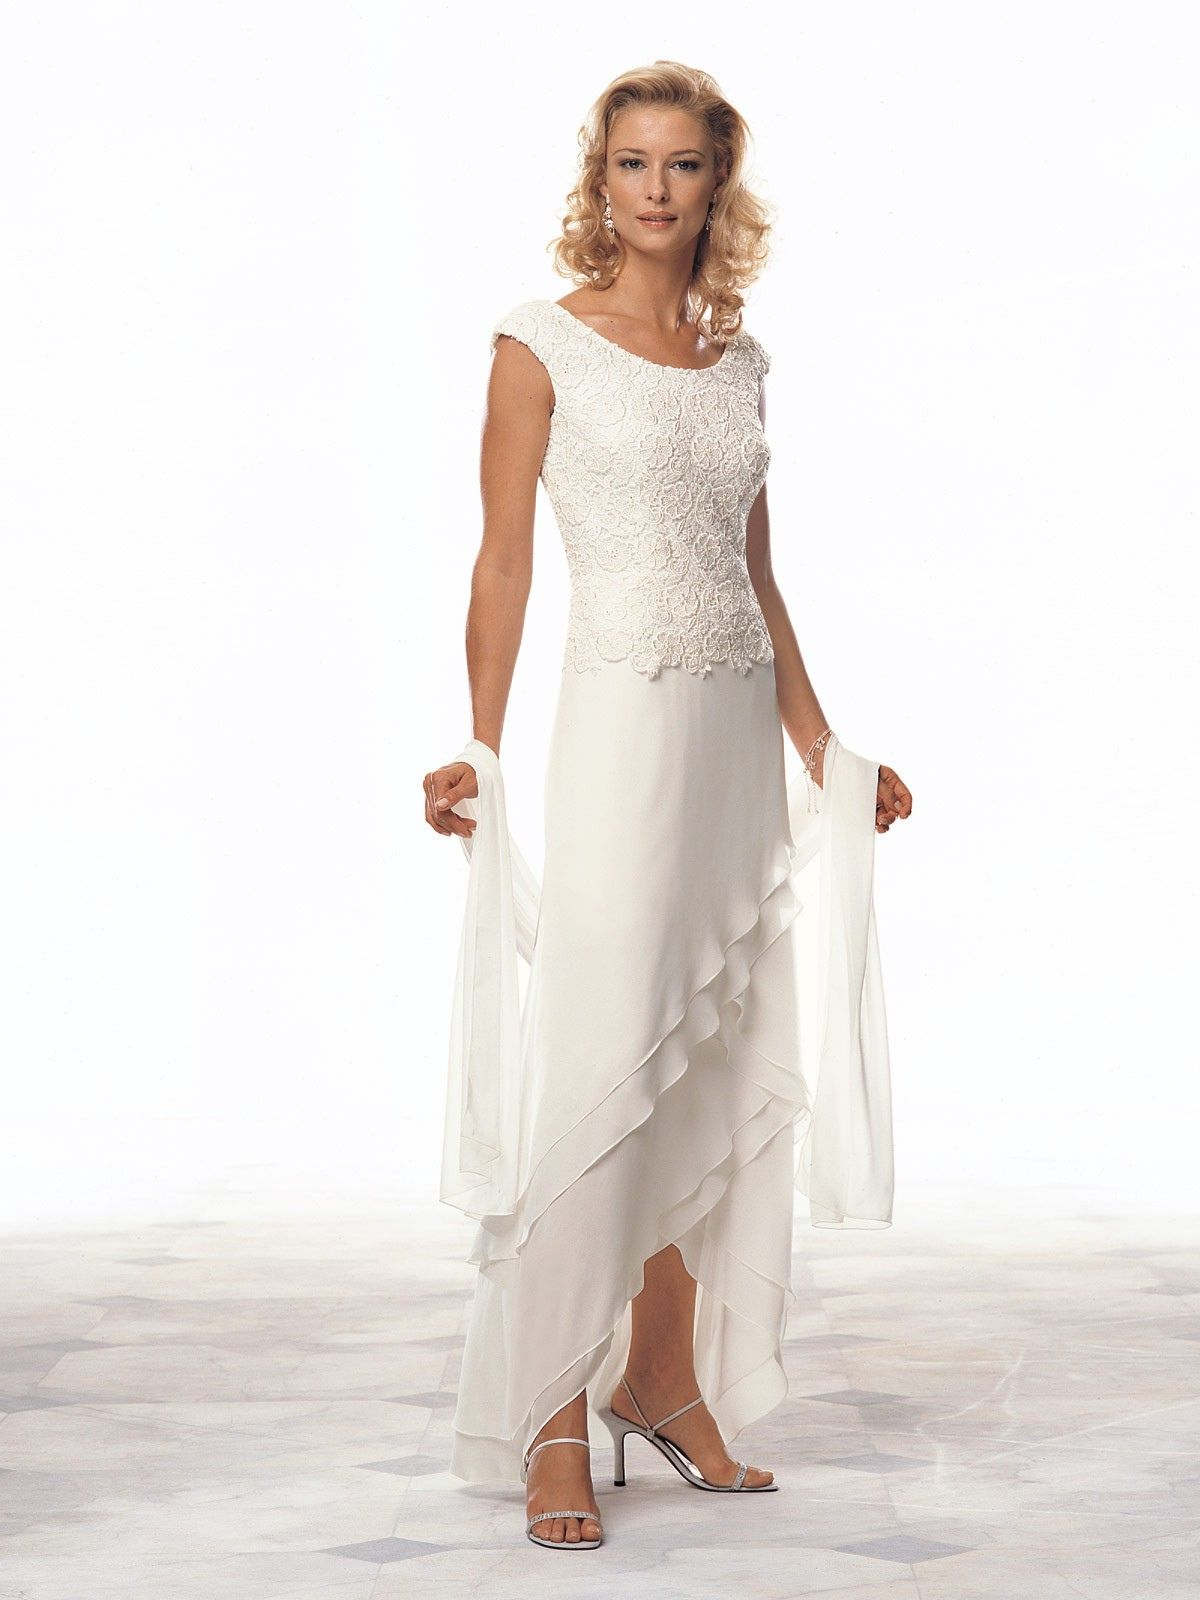 8 Mother Of the Groom Dresses for Fall Outdoor Wedding - Plus